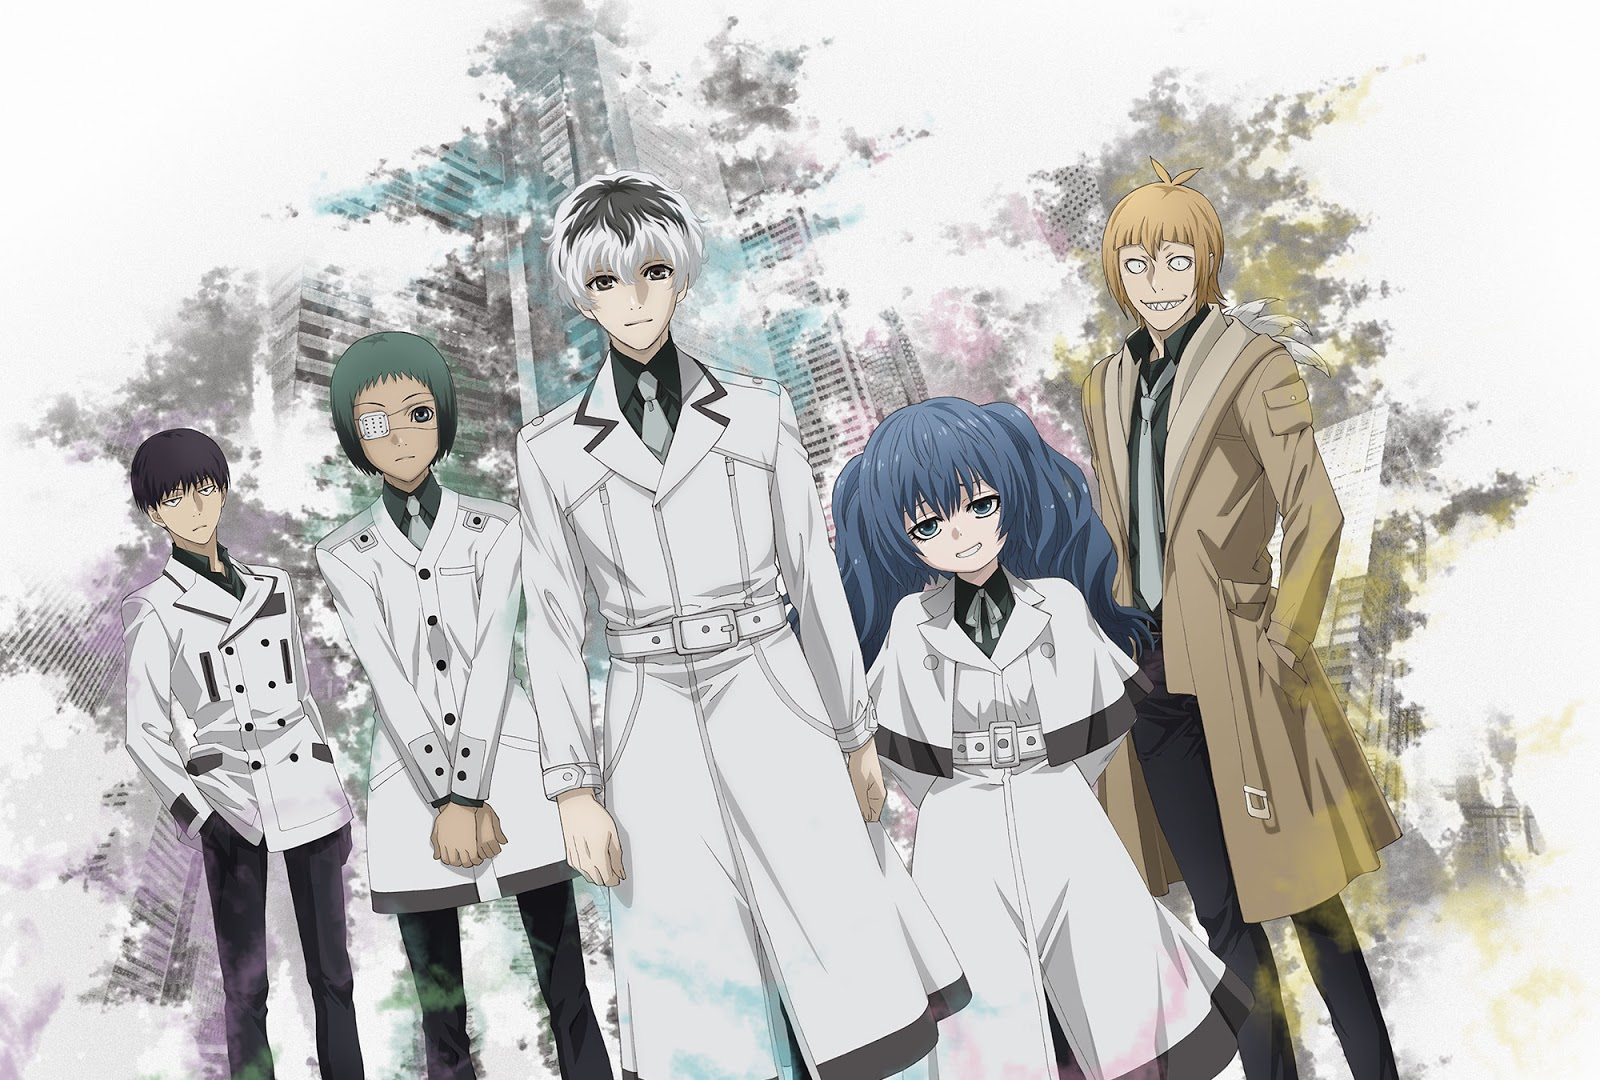 Tokyo Ghoul Re Anime Visual 2